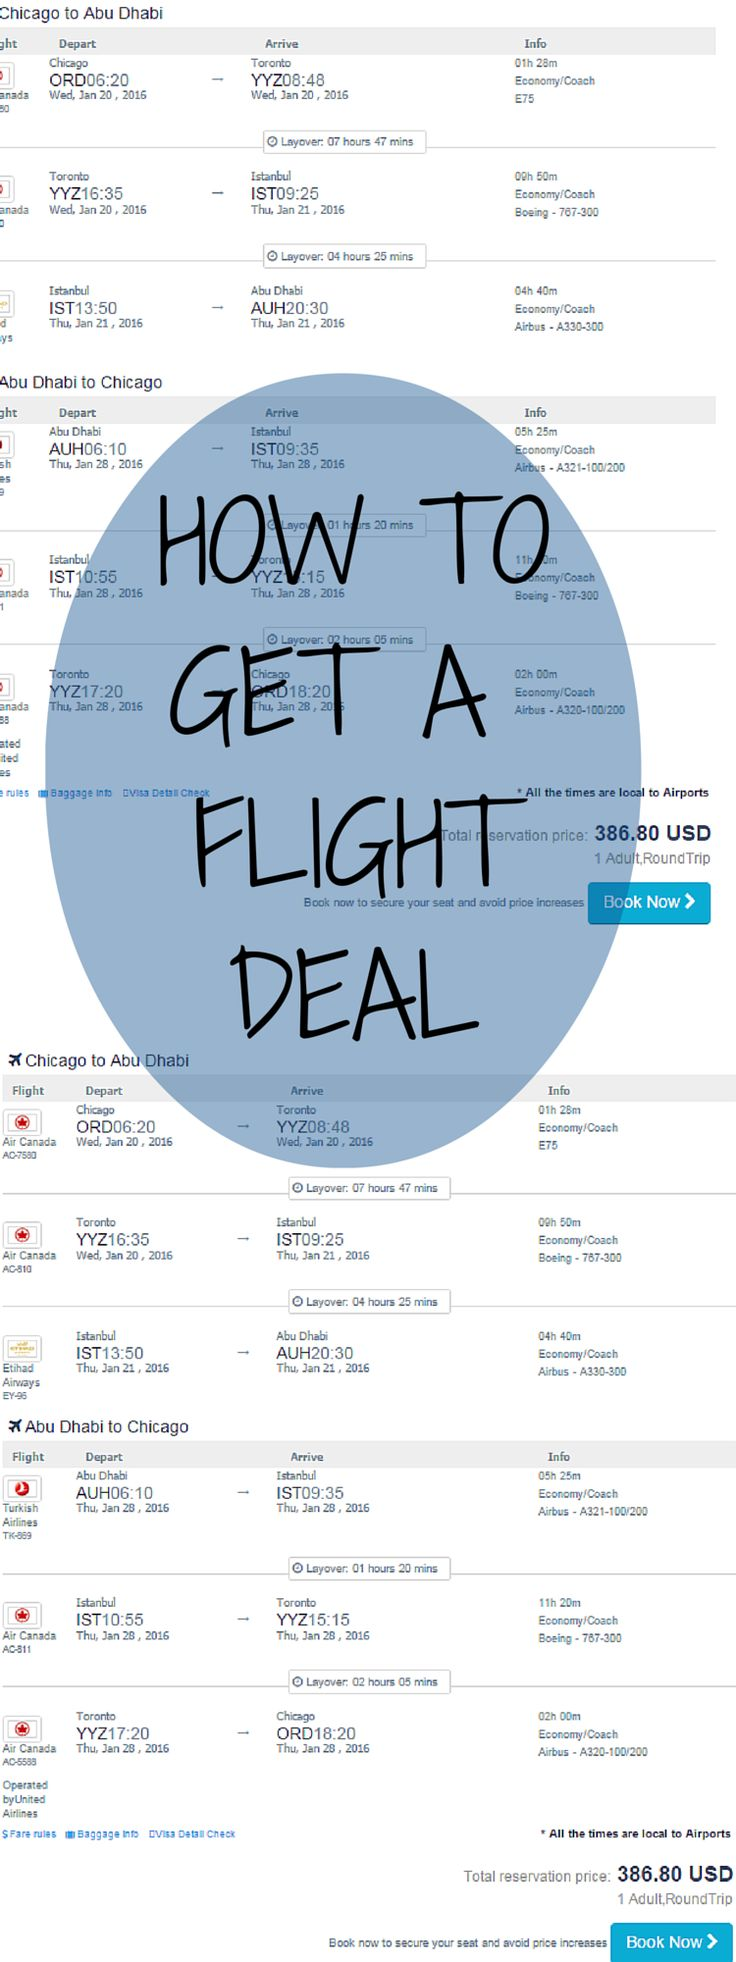 Tips for finding cheap airfare - How to save money on flights